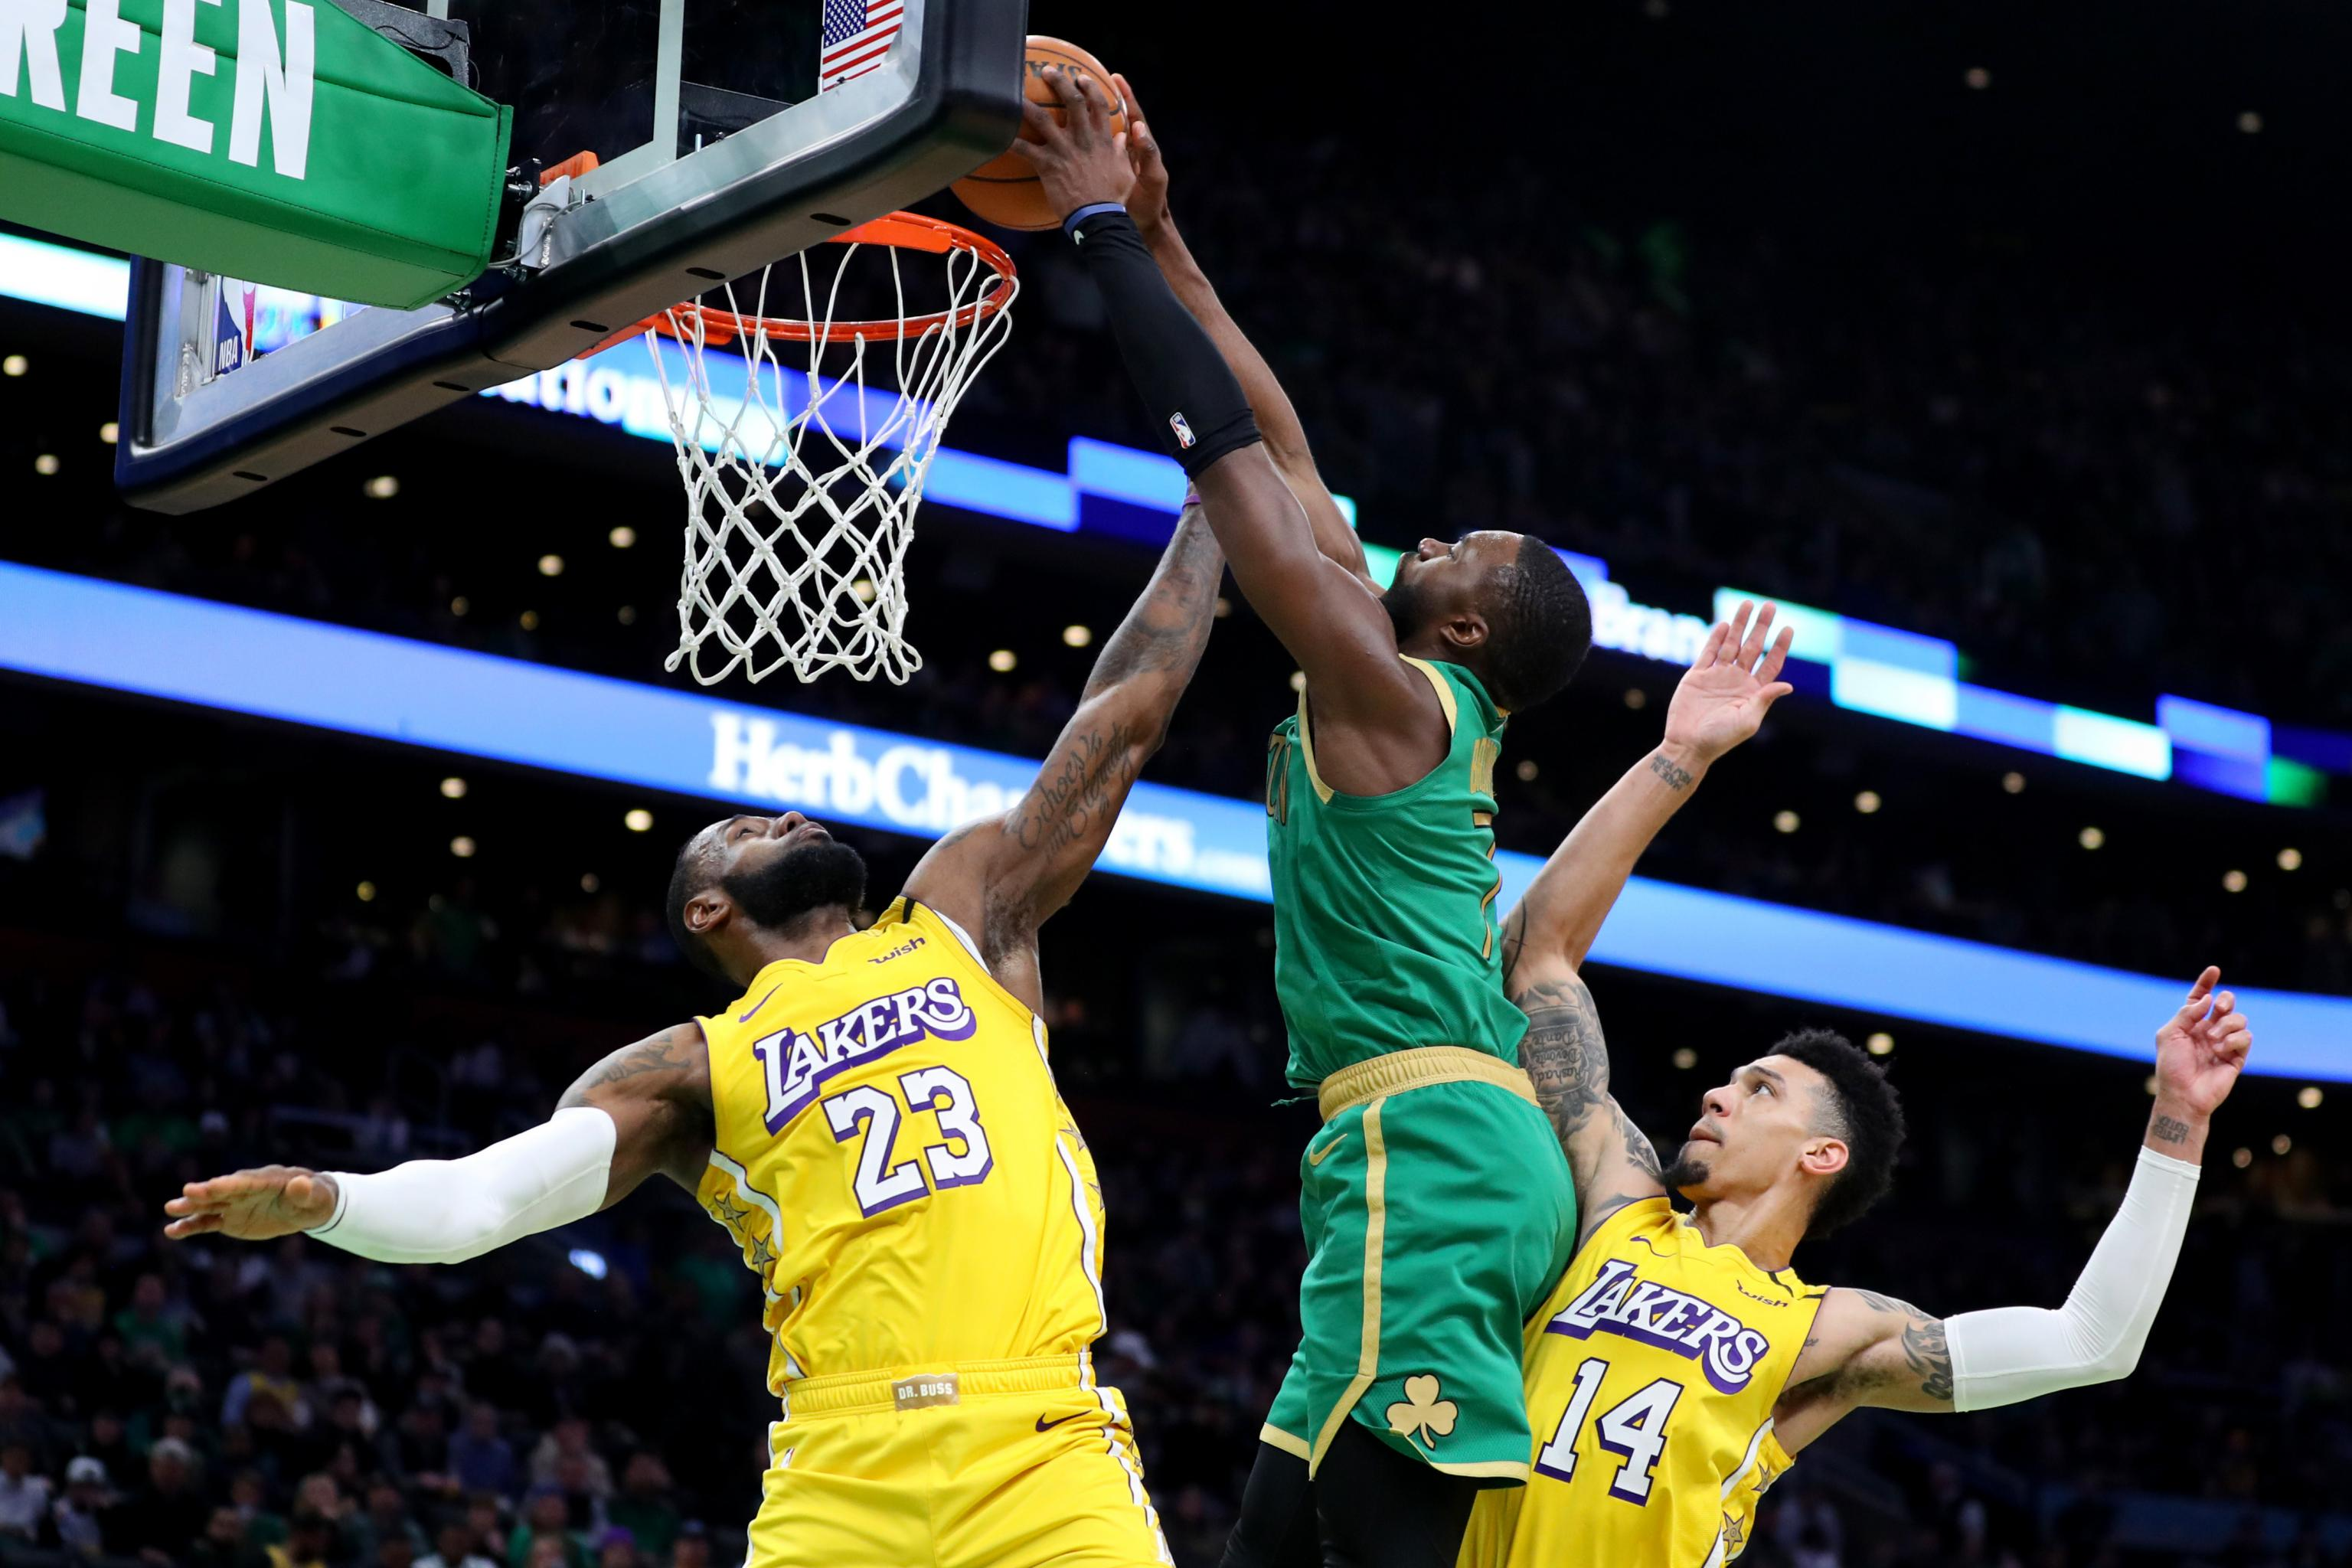 Celtics Jaylen Brown Poster Dunk On Lakers Lebron James Was Pretty Nice Bleacher Report Latest News Videos And Highlights